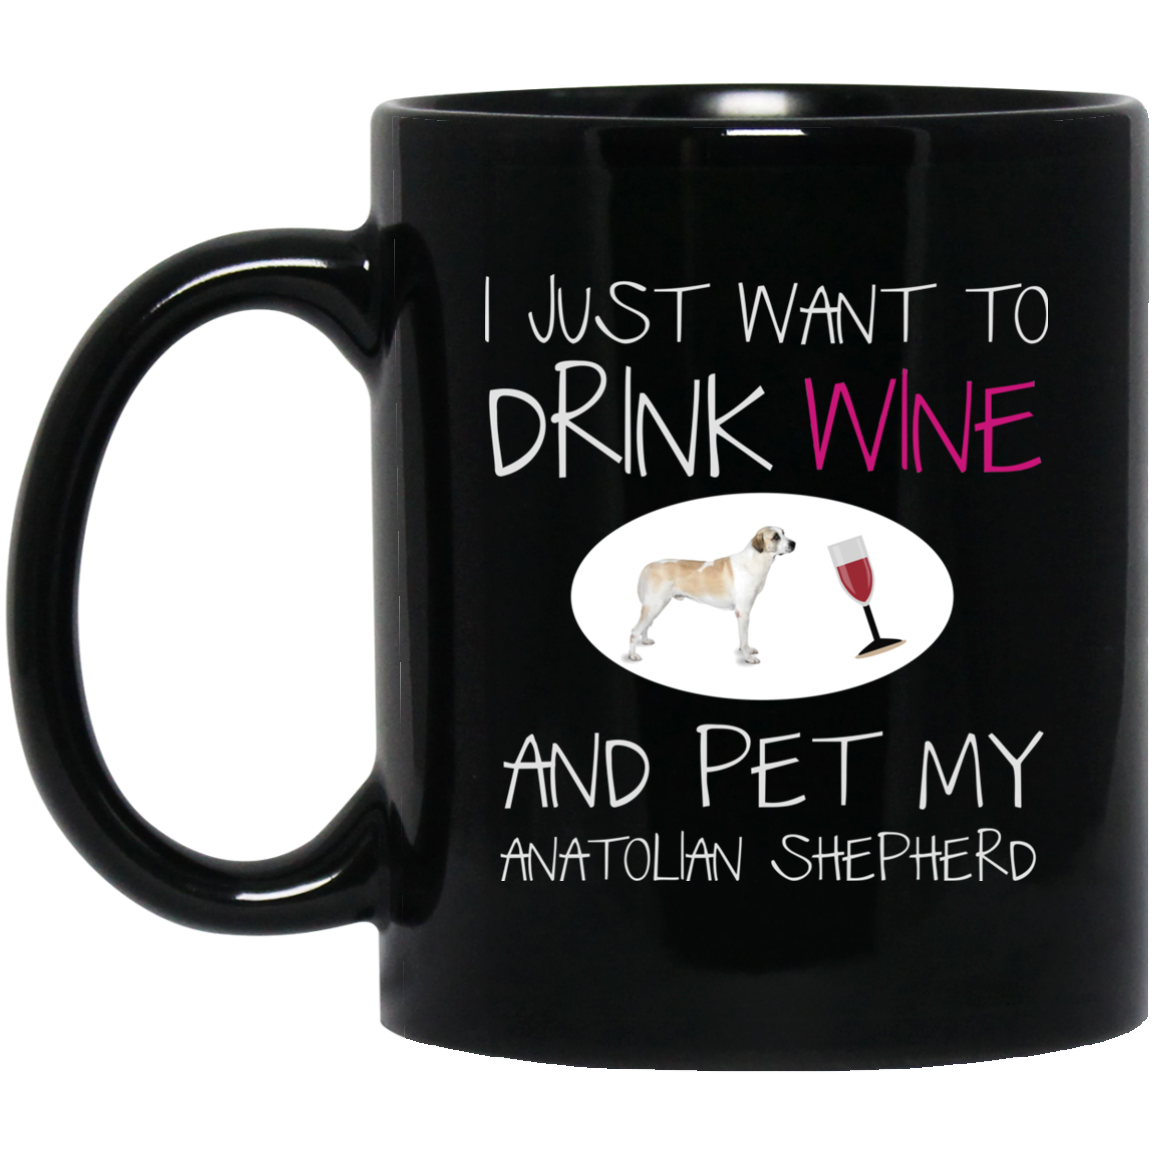 Anatolian Shepherd Mug - Drink Wine And Pet My Dog